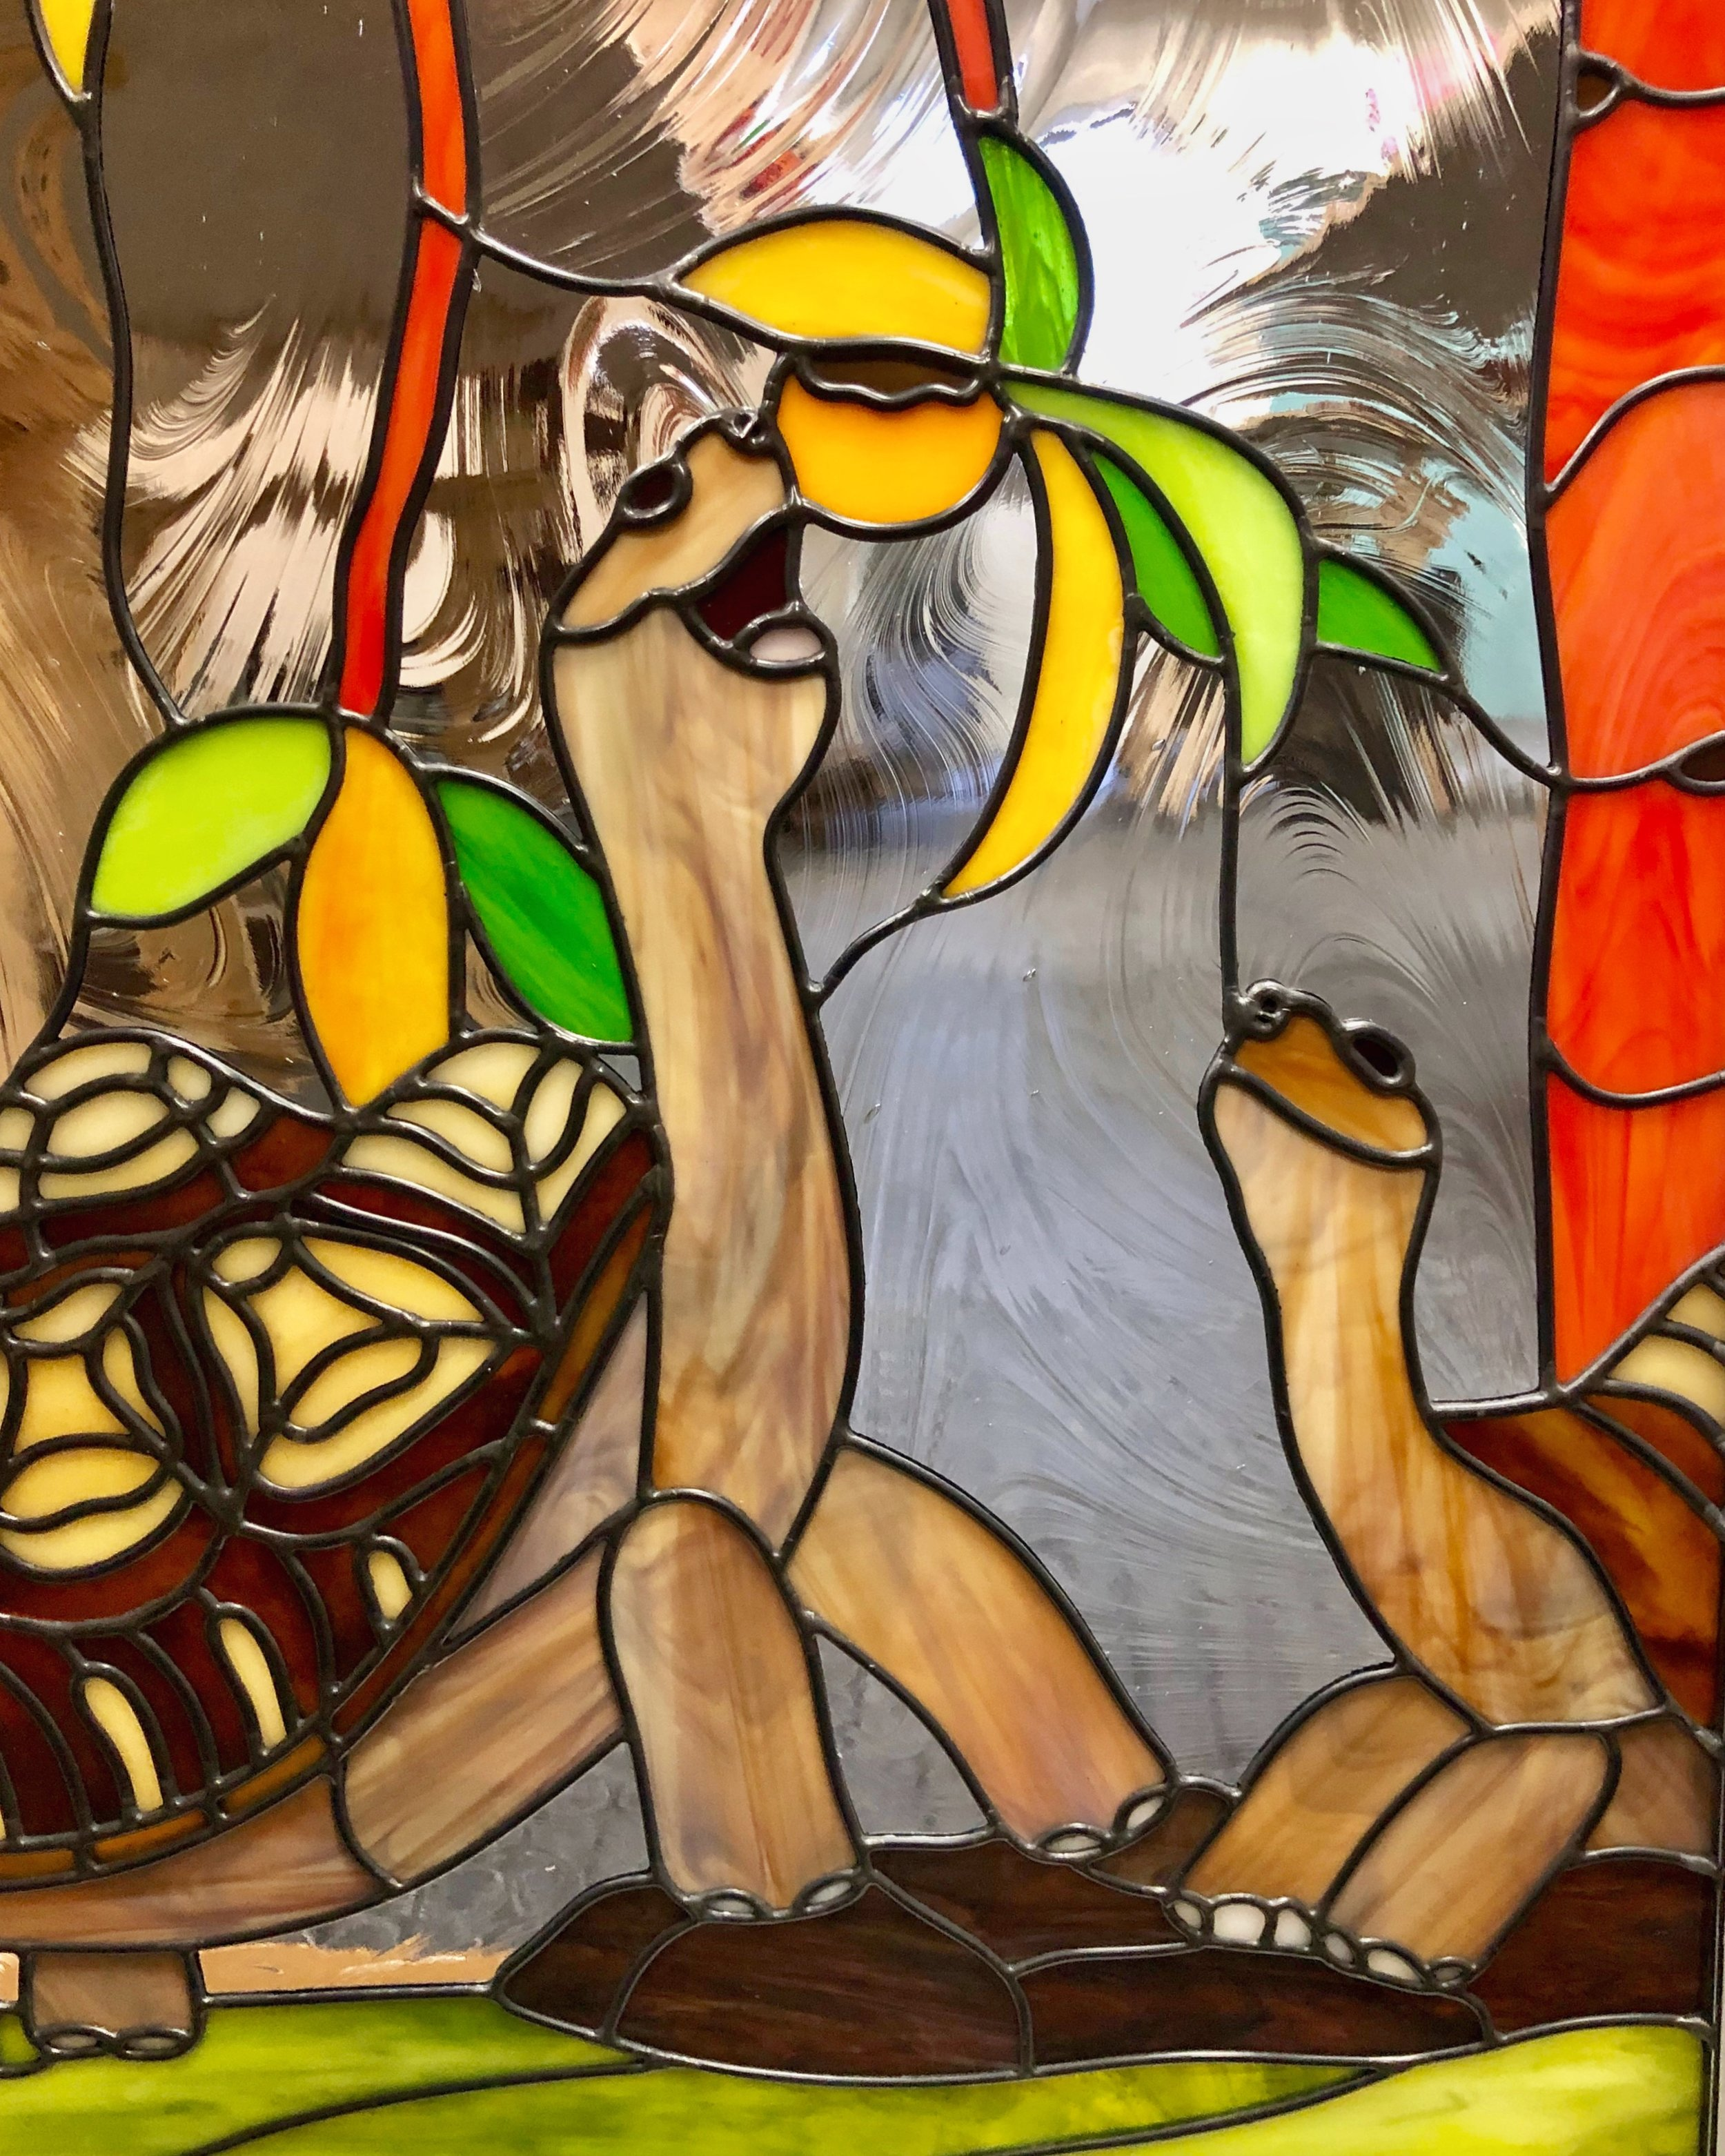 The same client with the piano collection has 2 pet tortoises in her backyard. Our latest project with her honors their backyard oasis by depicting the two tortoises in their patio window. (See the full design on the Nature Scenes tab.)